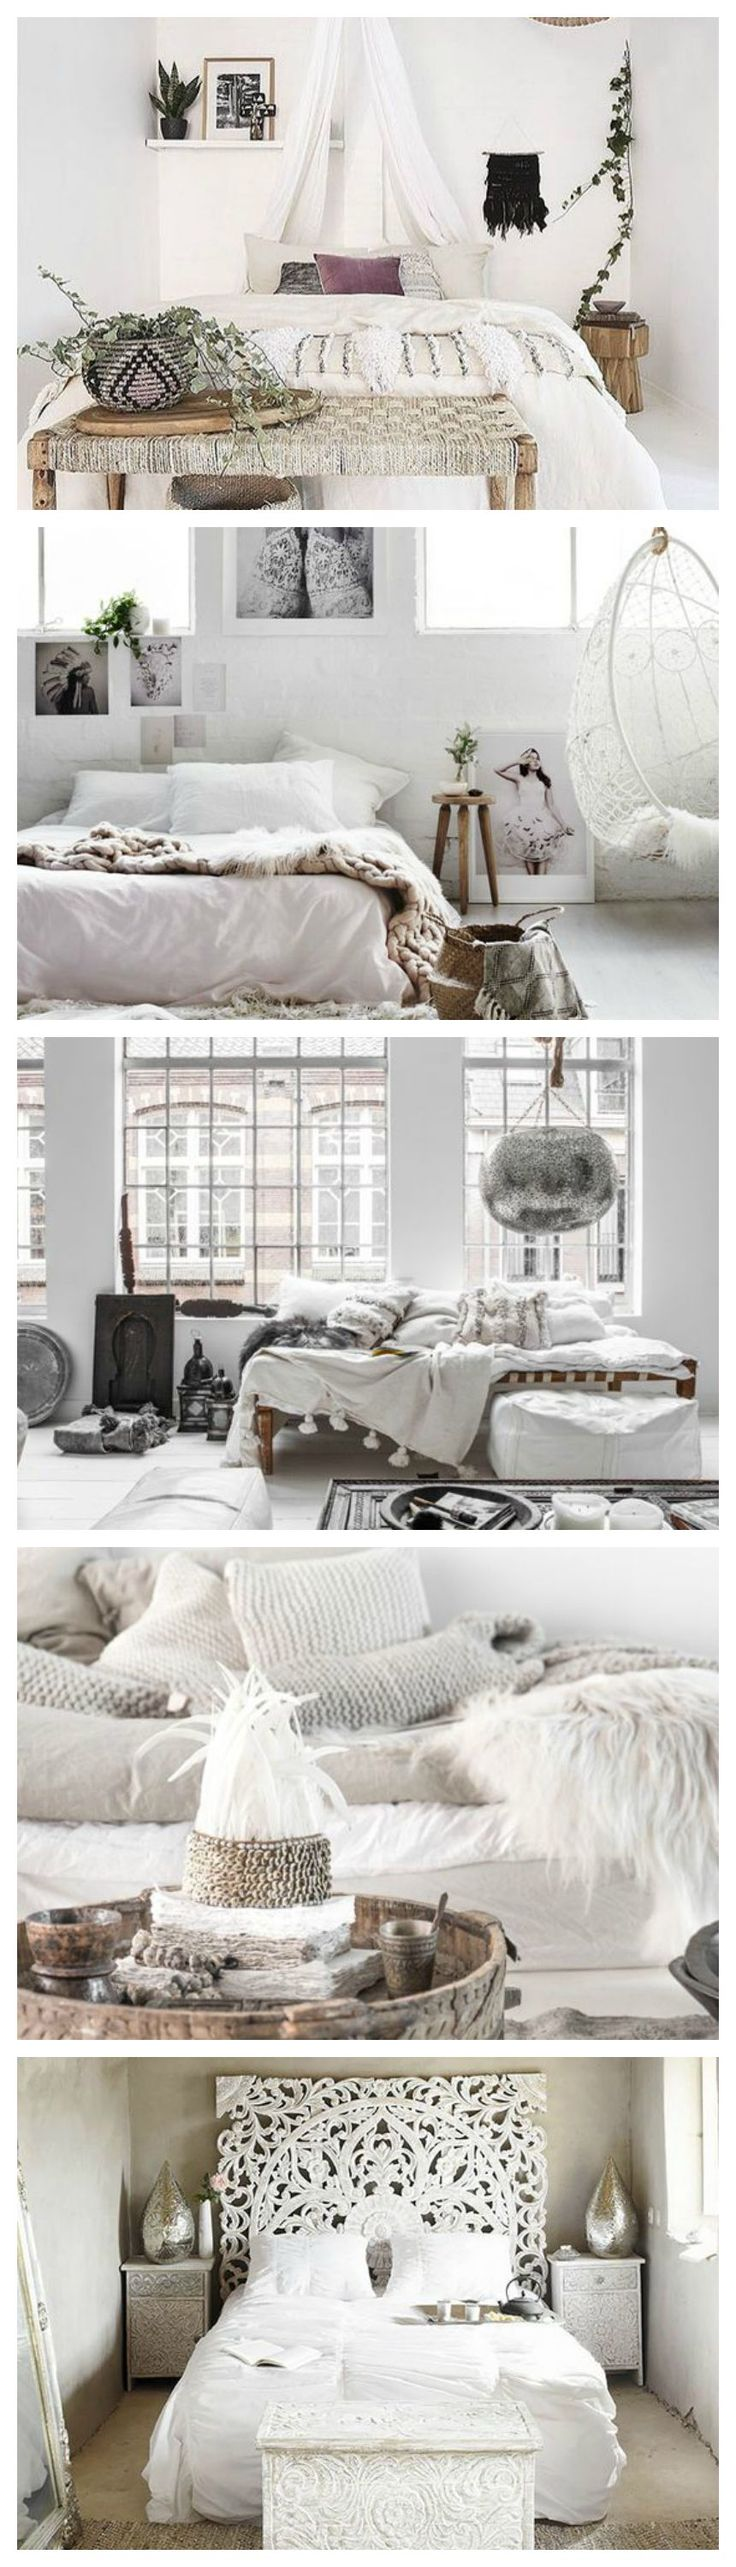 Best 25+ Bohemian bedrooms ideas on Pinterest | Bohemian ...